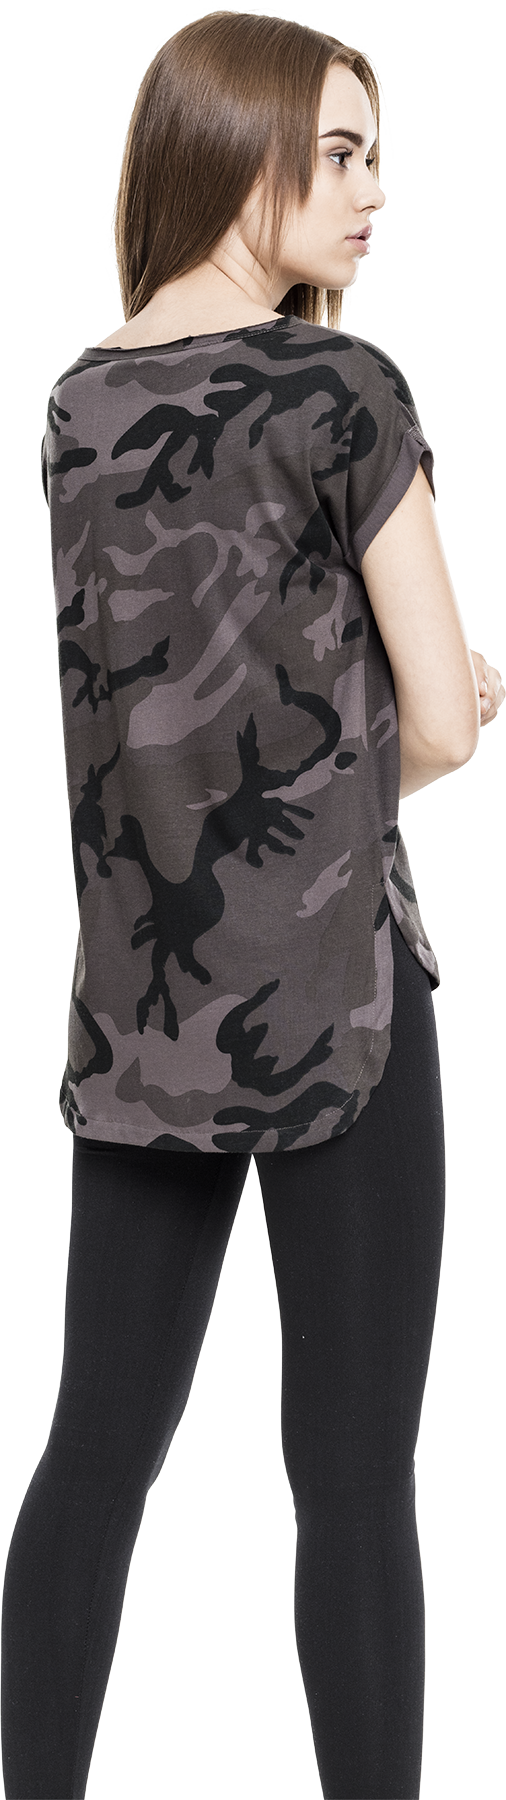 Ladies Camo Back Shaped Tee Girl-Shirt darkcamo Urban Classics Verkauf Websites u80FmAXz0